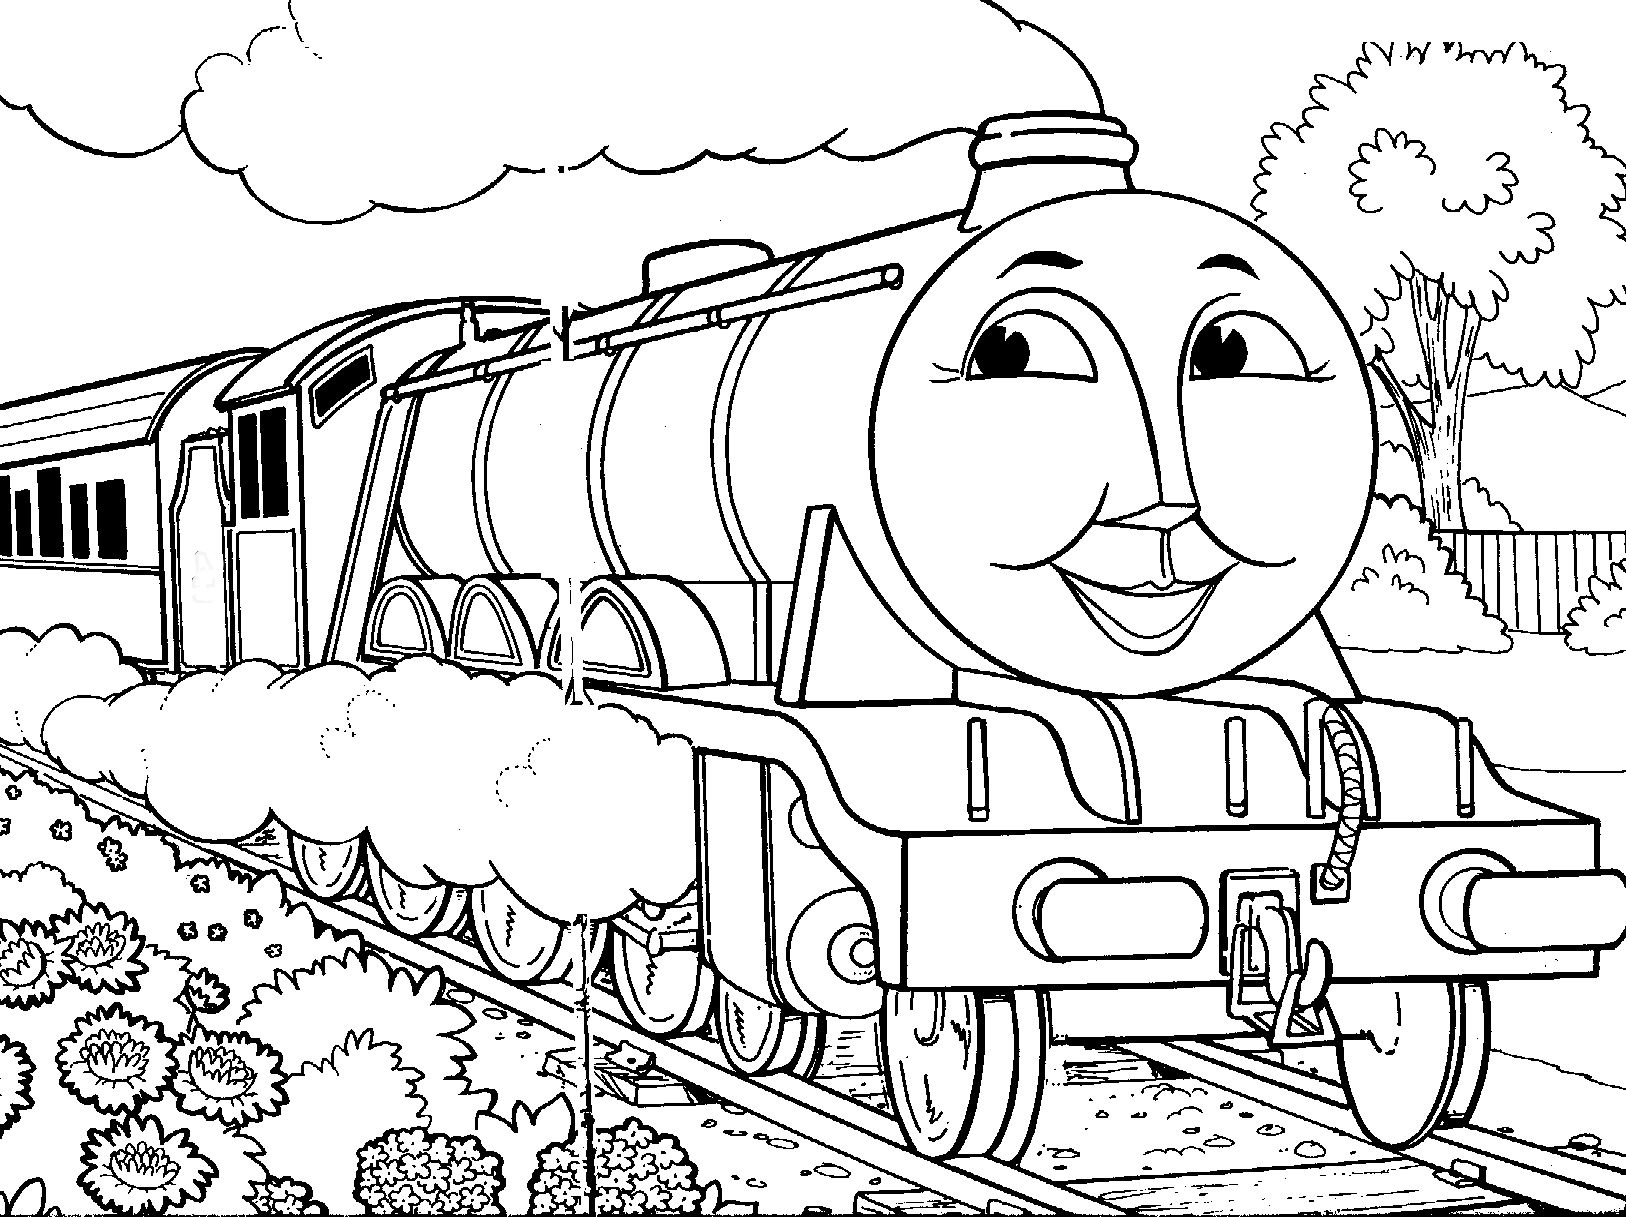 colouring pages thomas the tank engine thomas train drawing at getdrawings free download pages engine tank thomas colouring the